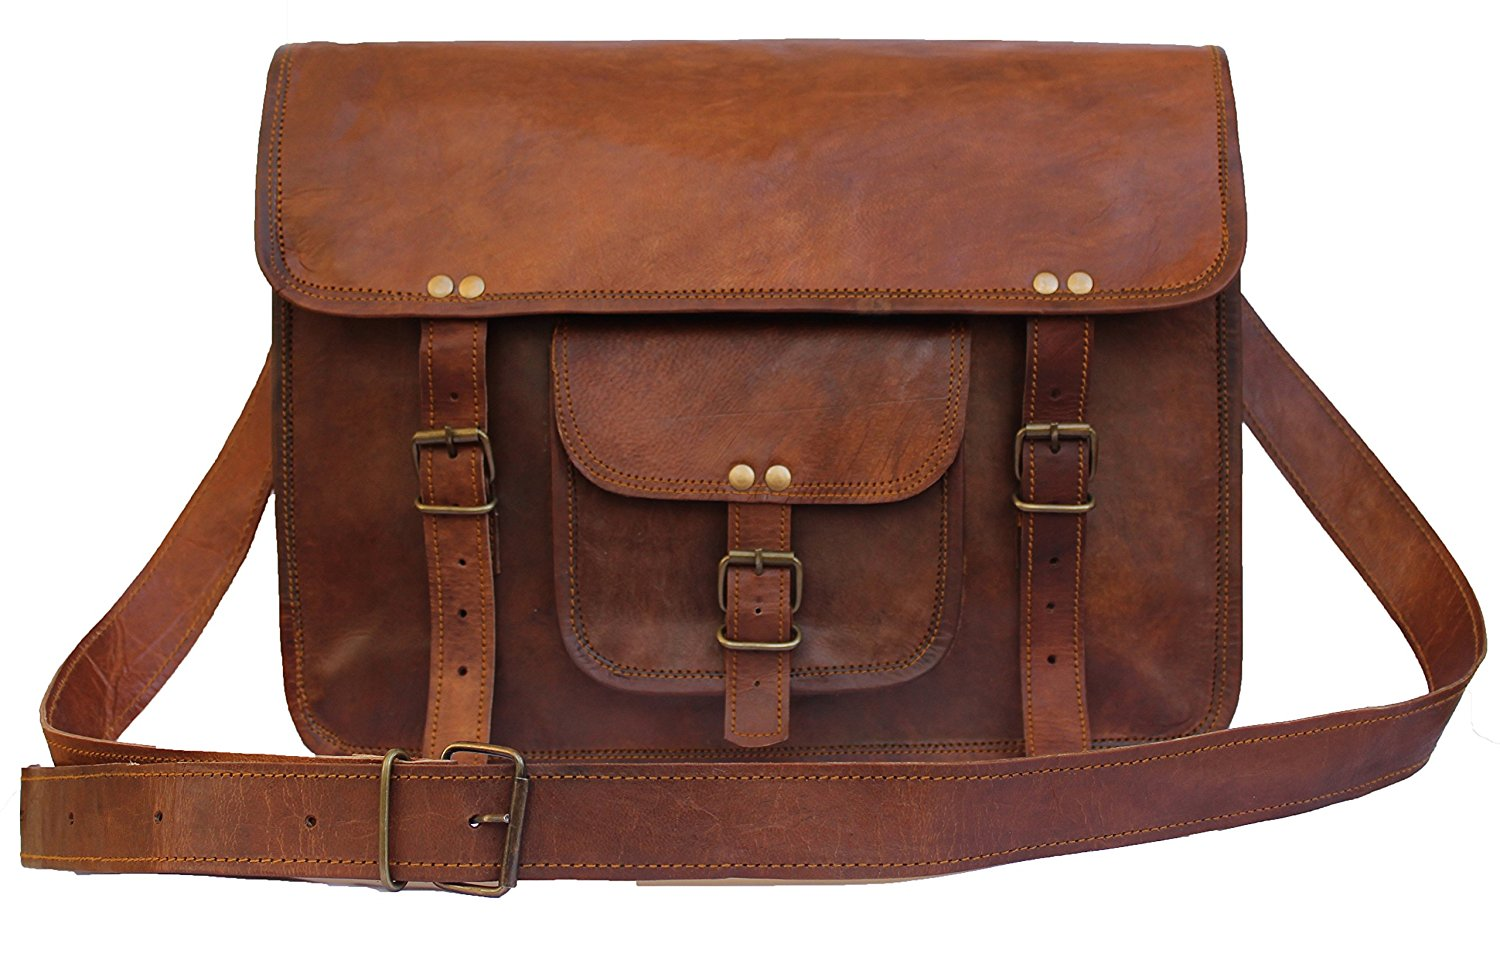 United Leather Bags 15'' Inches Classic Adult Unisex Cross Shoulder Genuine Leather Messenger Laptop Briefcase Bag Satchel Brown